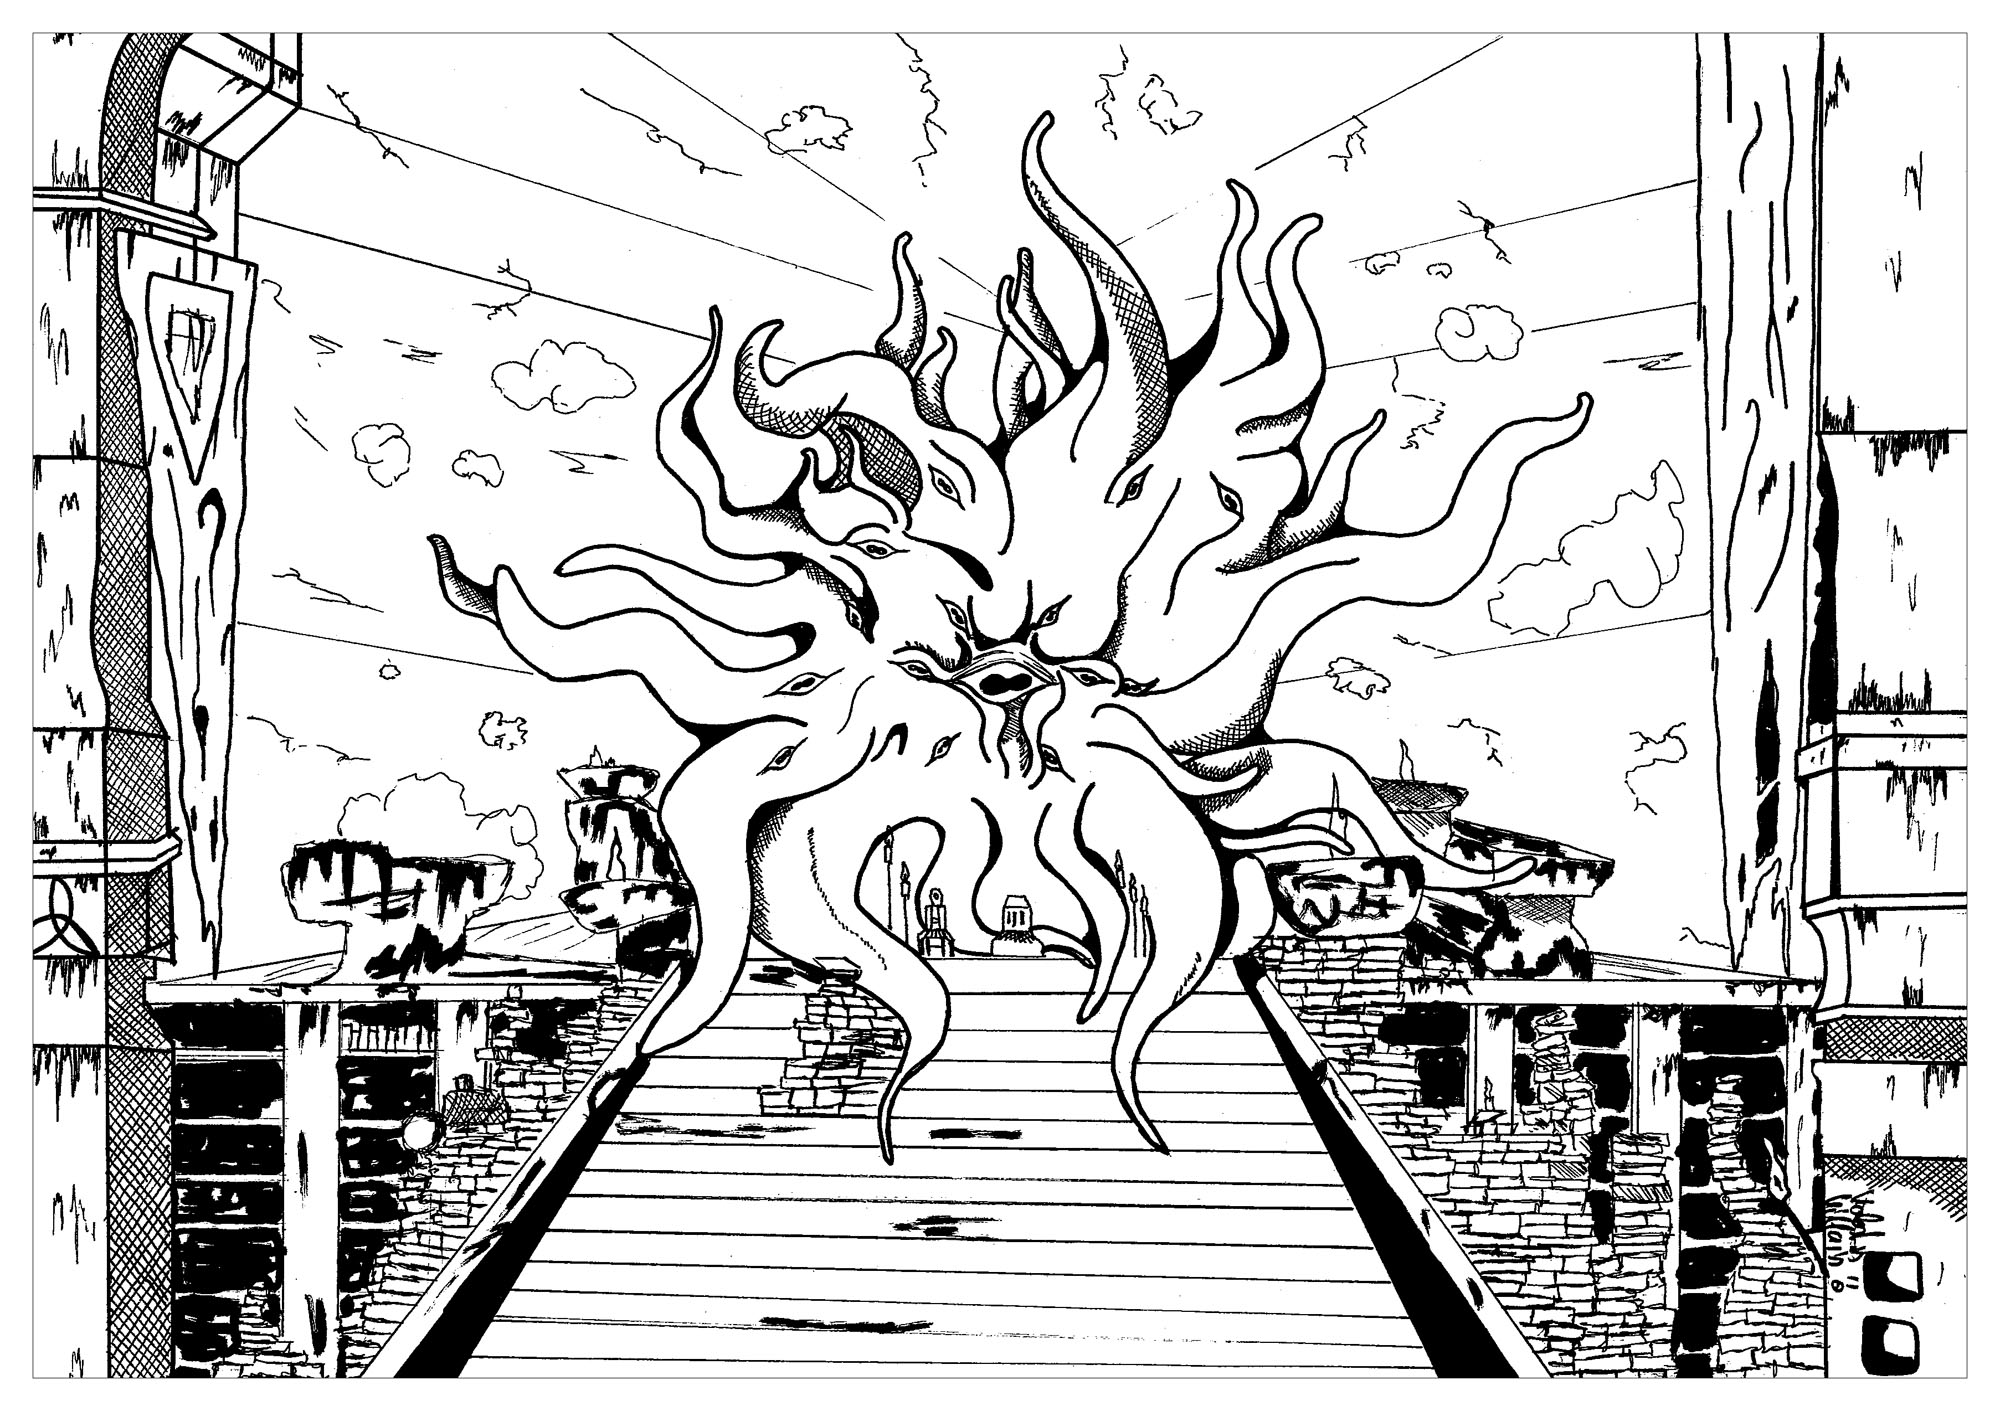 Myths & legends - Coloring Pages for Adults